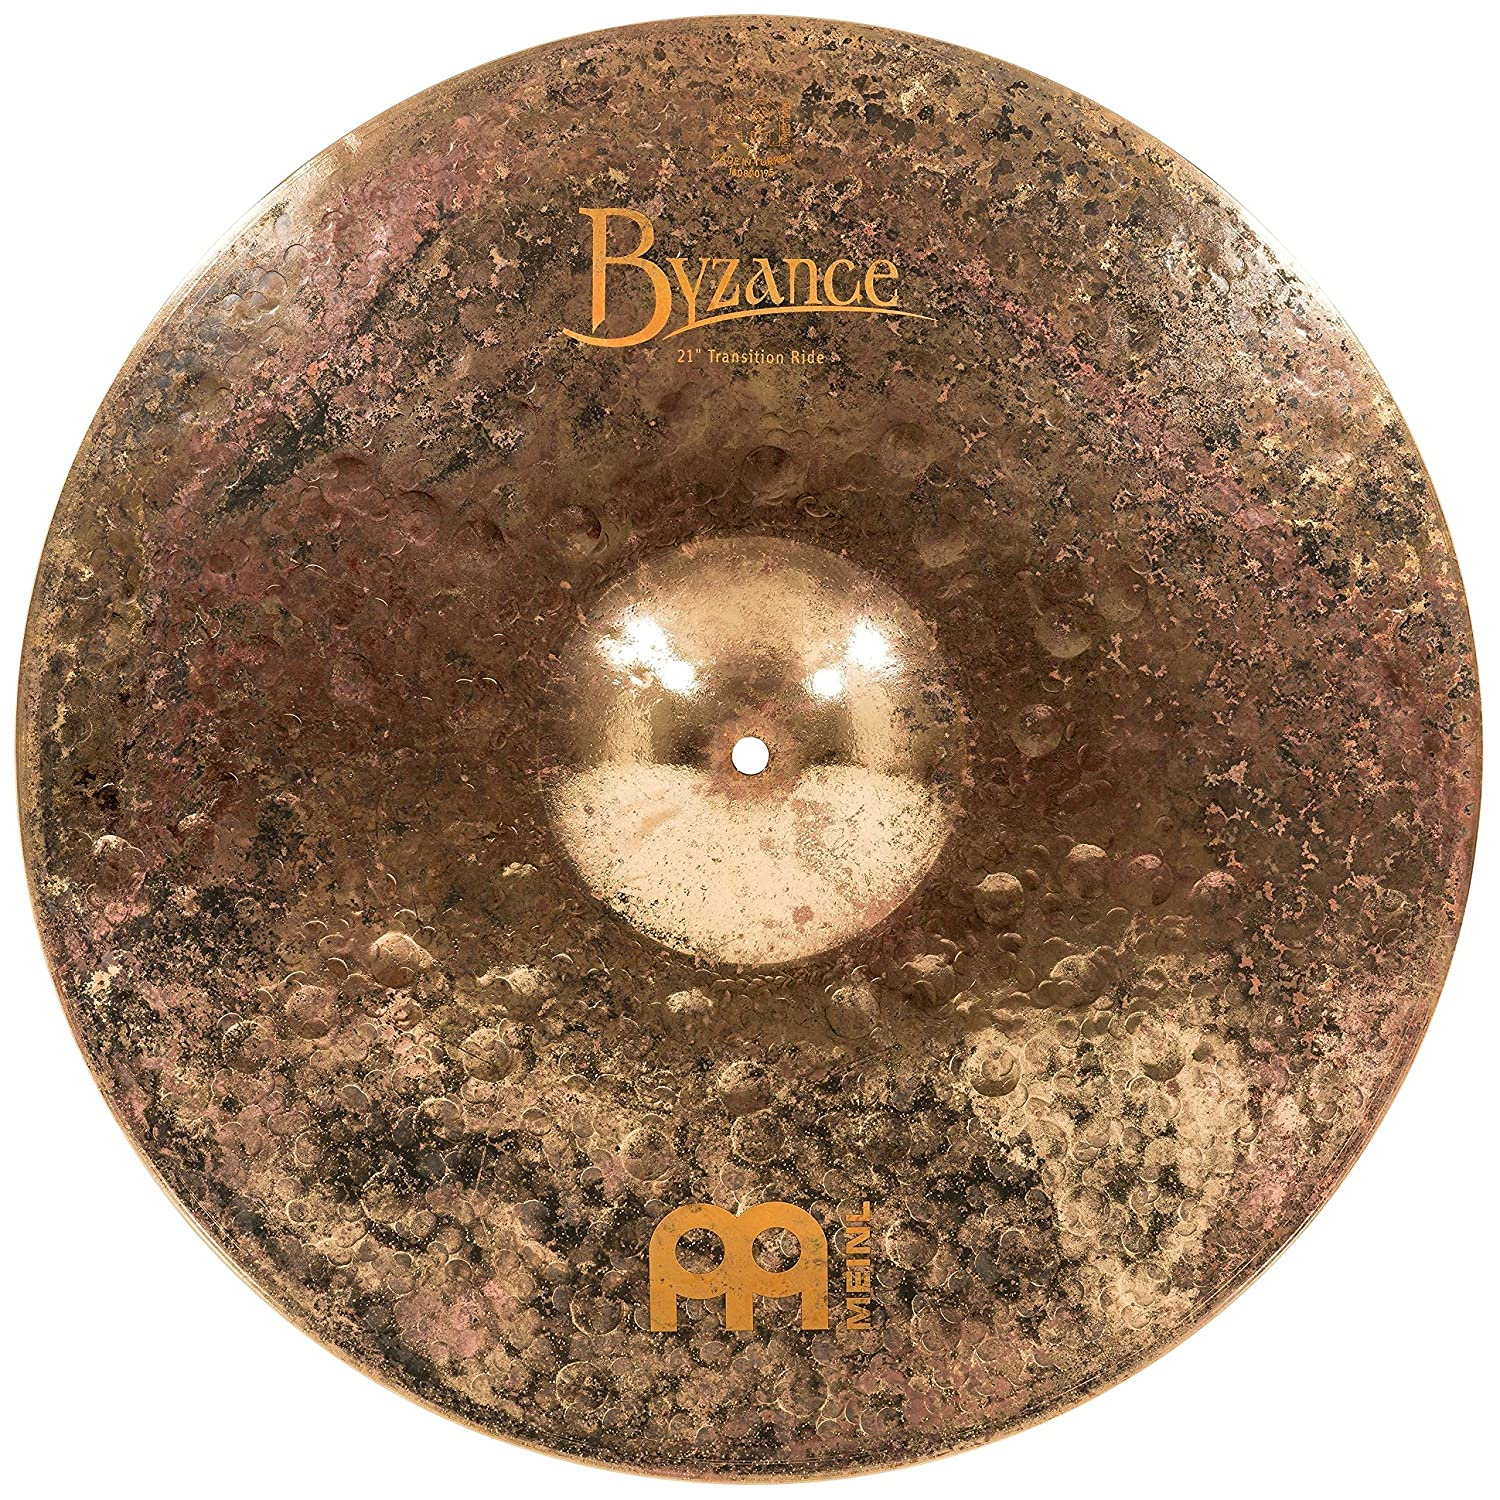 Meinl Cymbals B21TSR Byzance 21-Inch Mike Johnston Signature Transition Ride Cymbal (VIDEO) Meinl USA L.C.